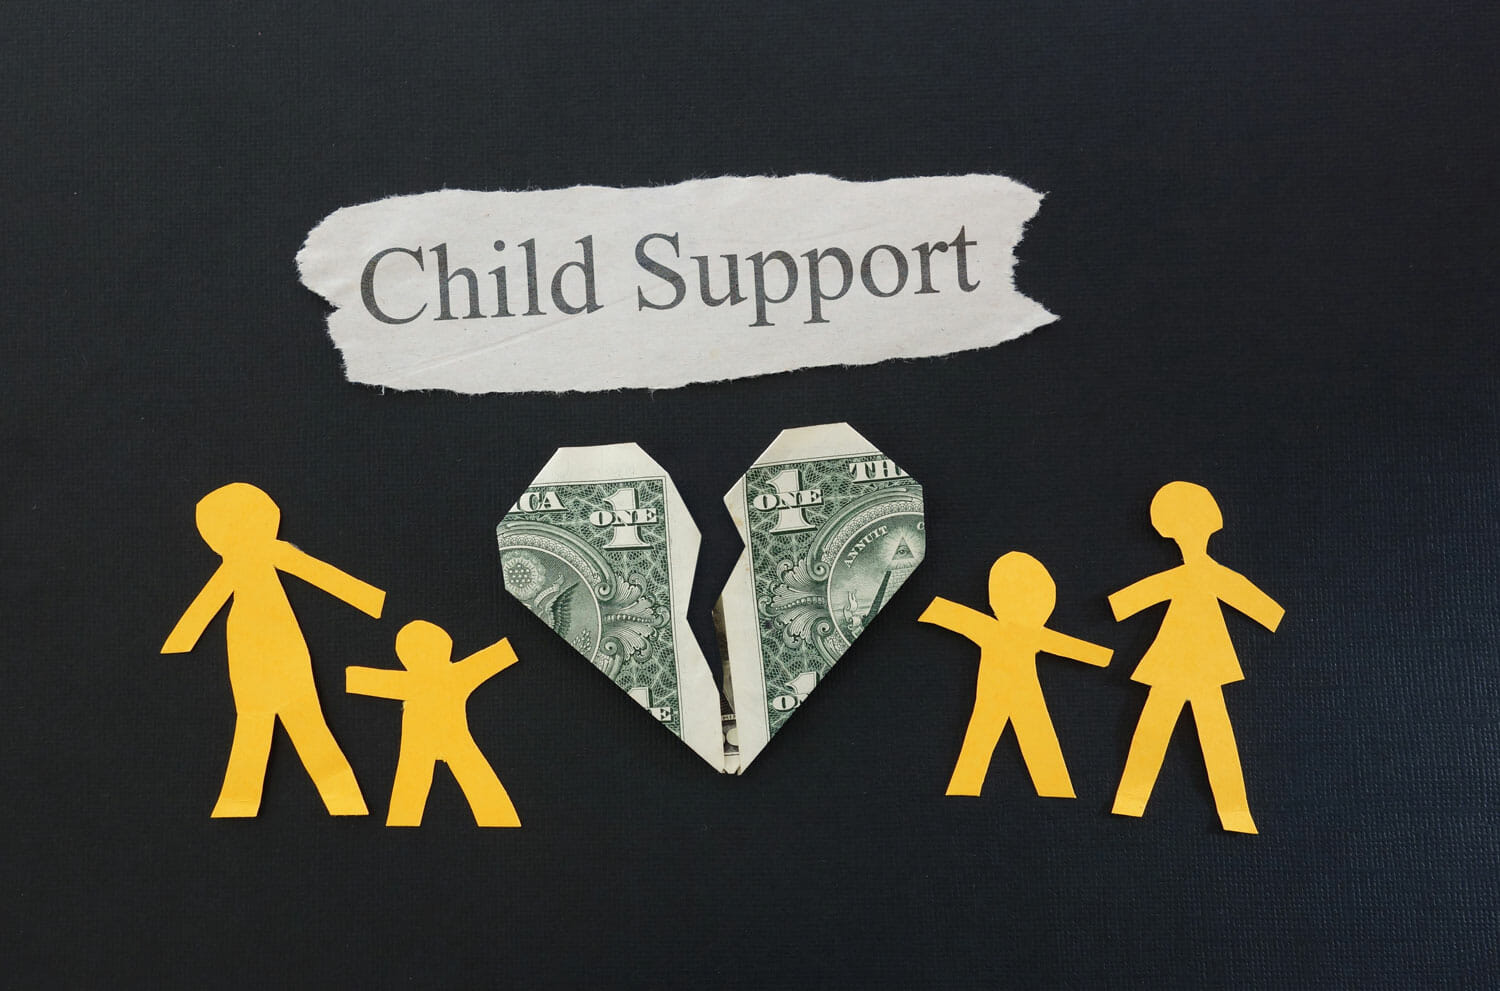 TANF and child support